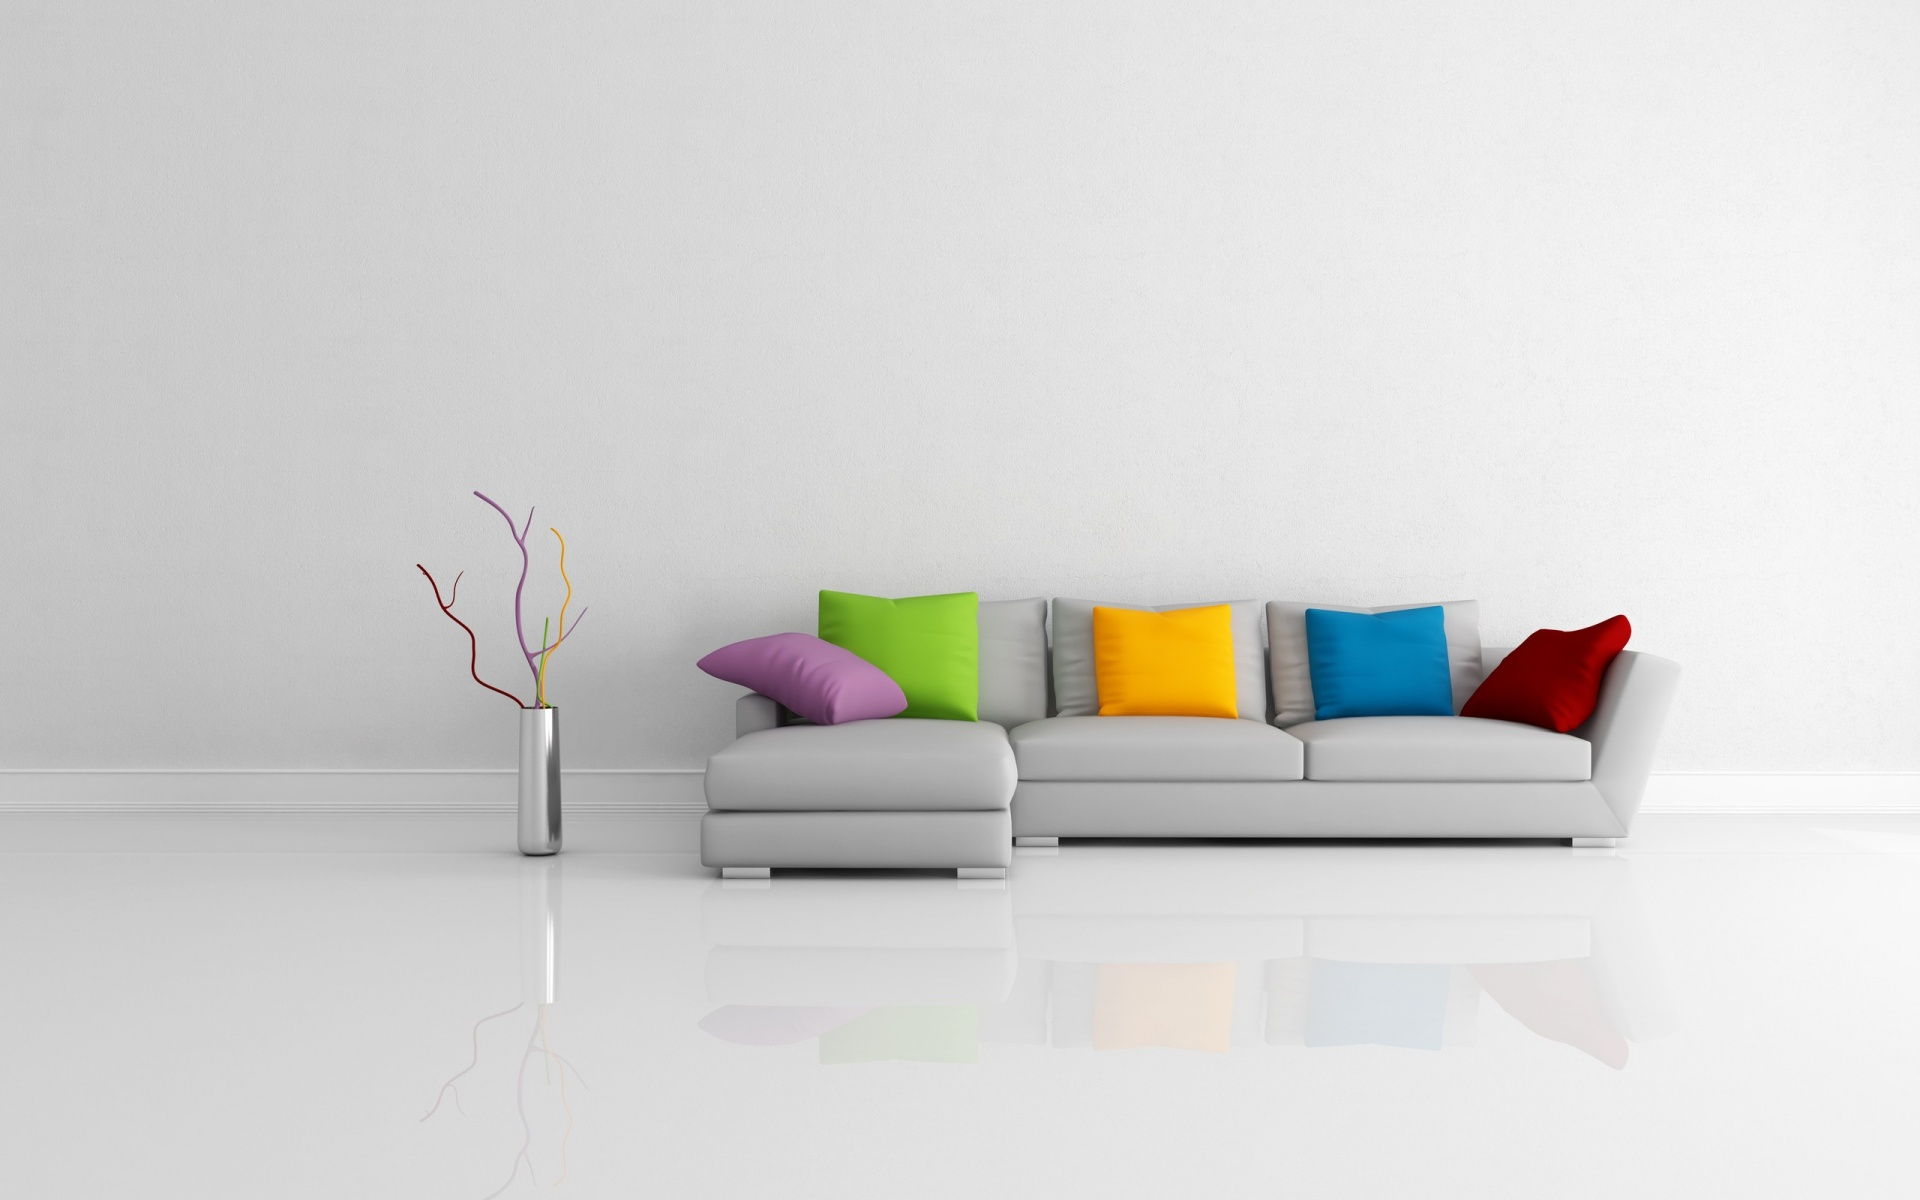 Modern Sofa Colorful Pillows Wallpapers 1920x1200 371779